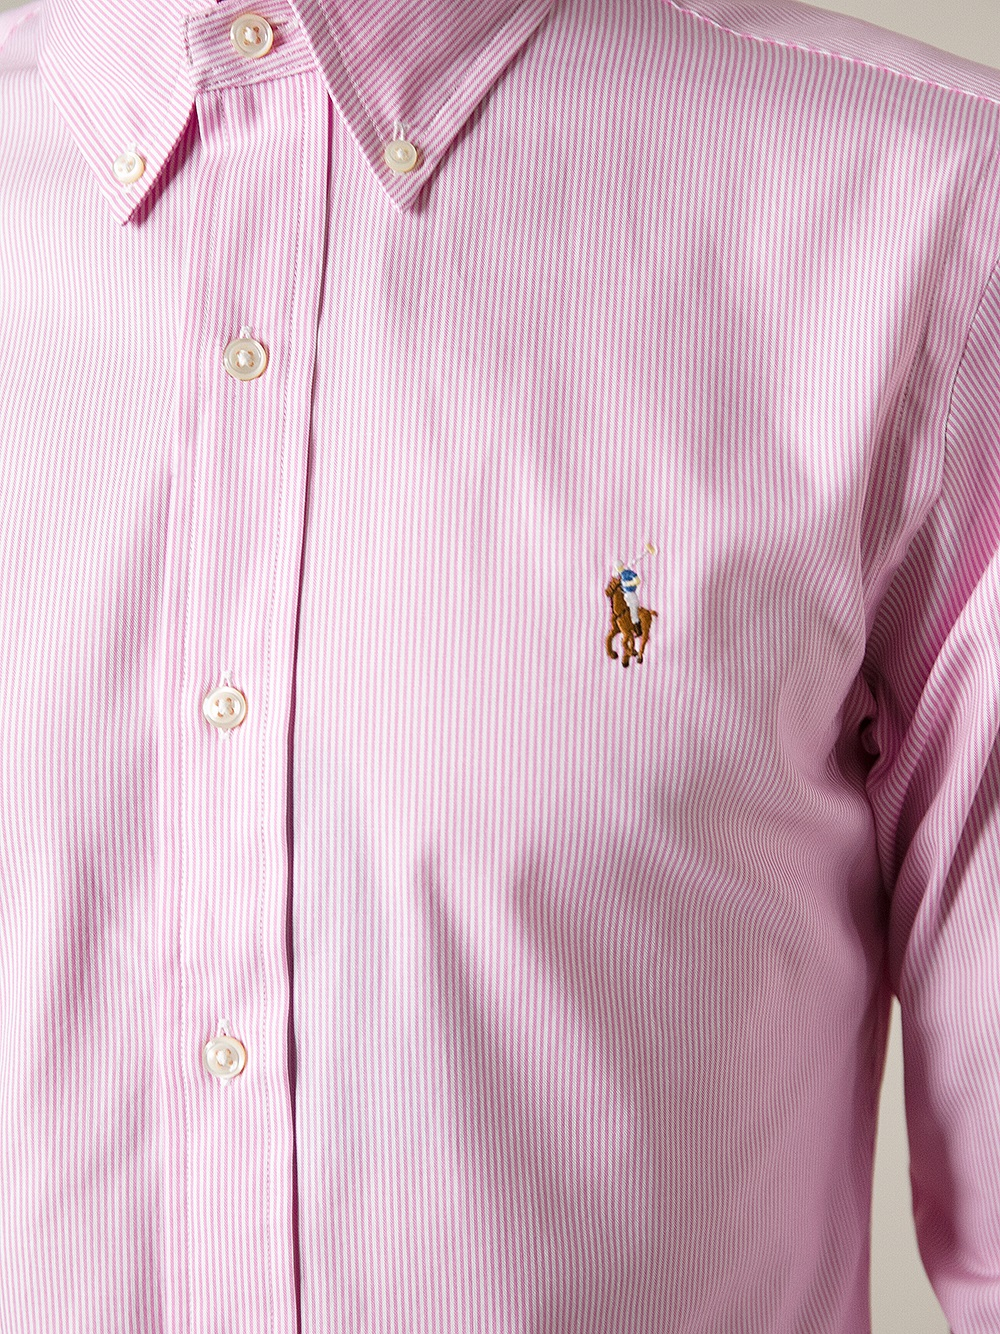 Polo ralph lauren Fine Striped Shirt in Pink for Men | Lyst